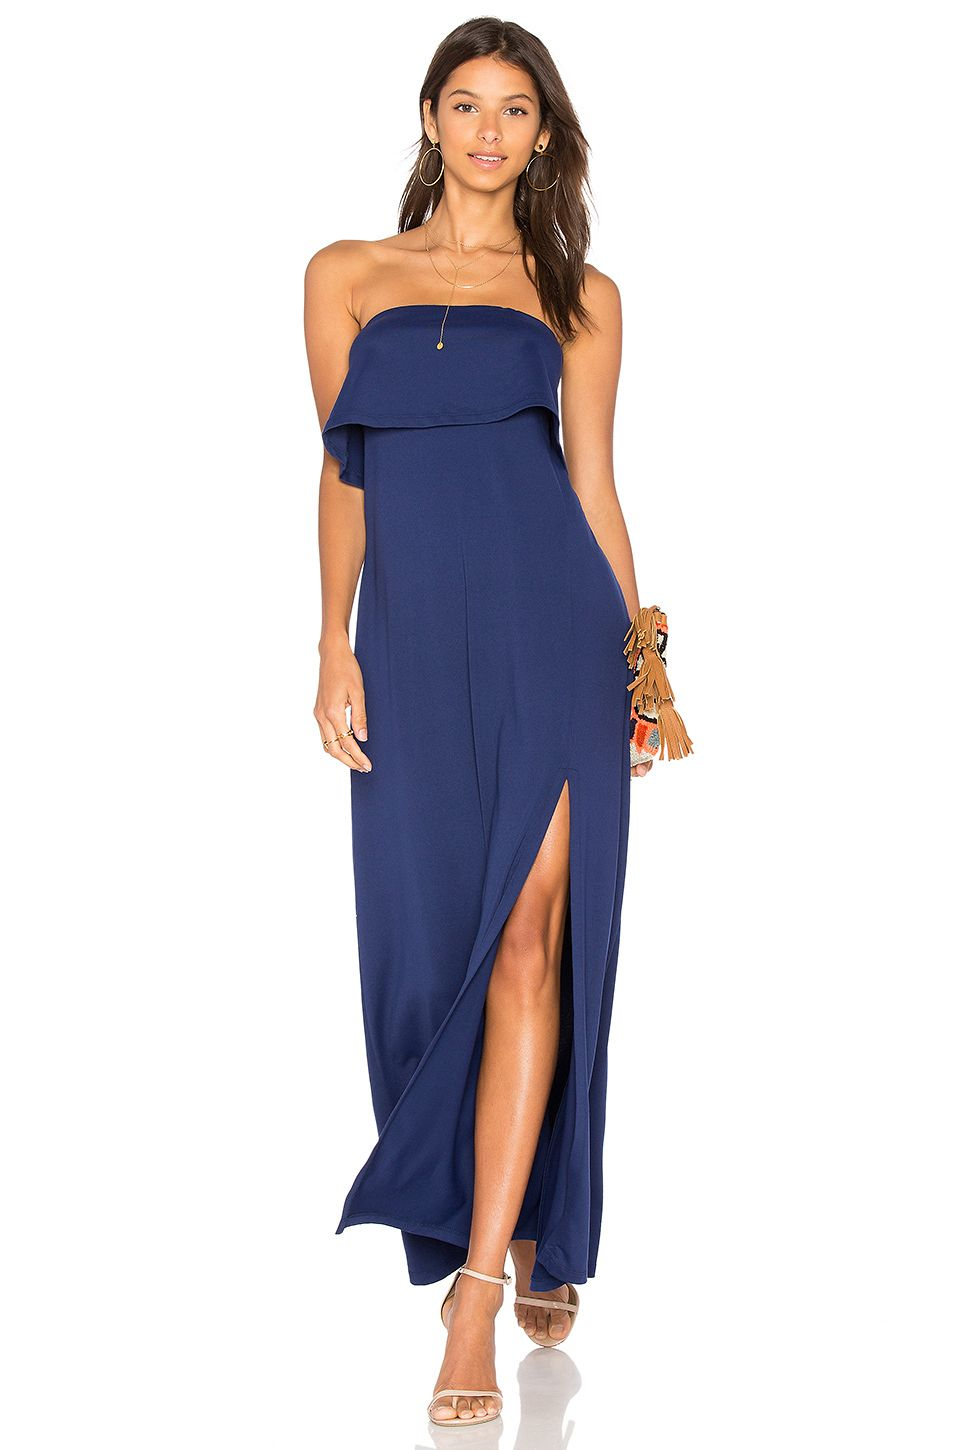 Bridesmaid dresses you can wear again wedding sparrow a navy colored strapless maxi 10 bridesmaid dresses ombrellifo Image collections